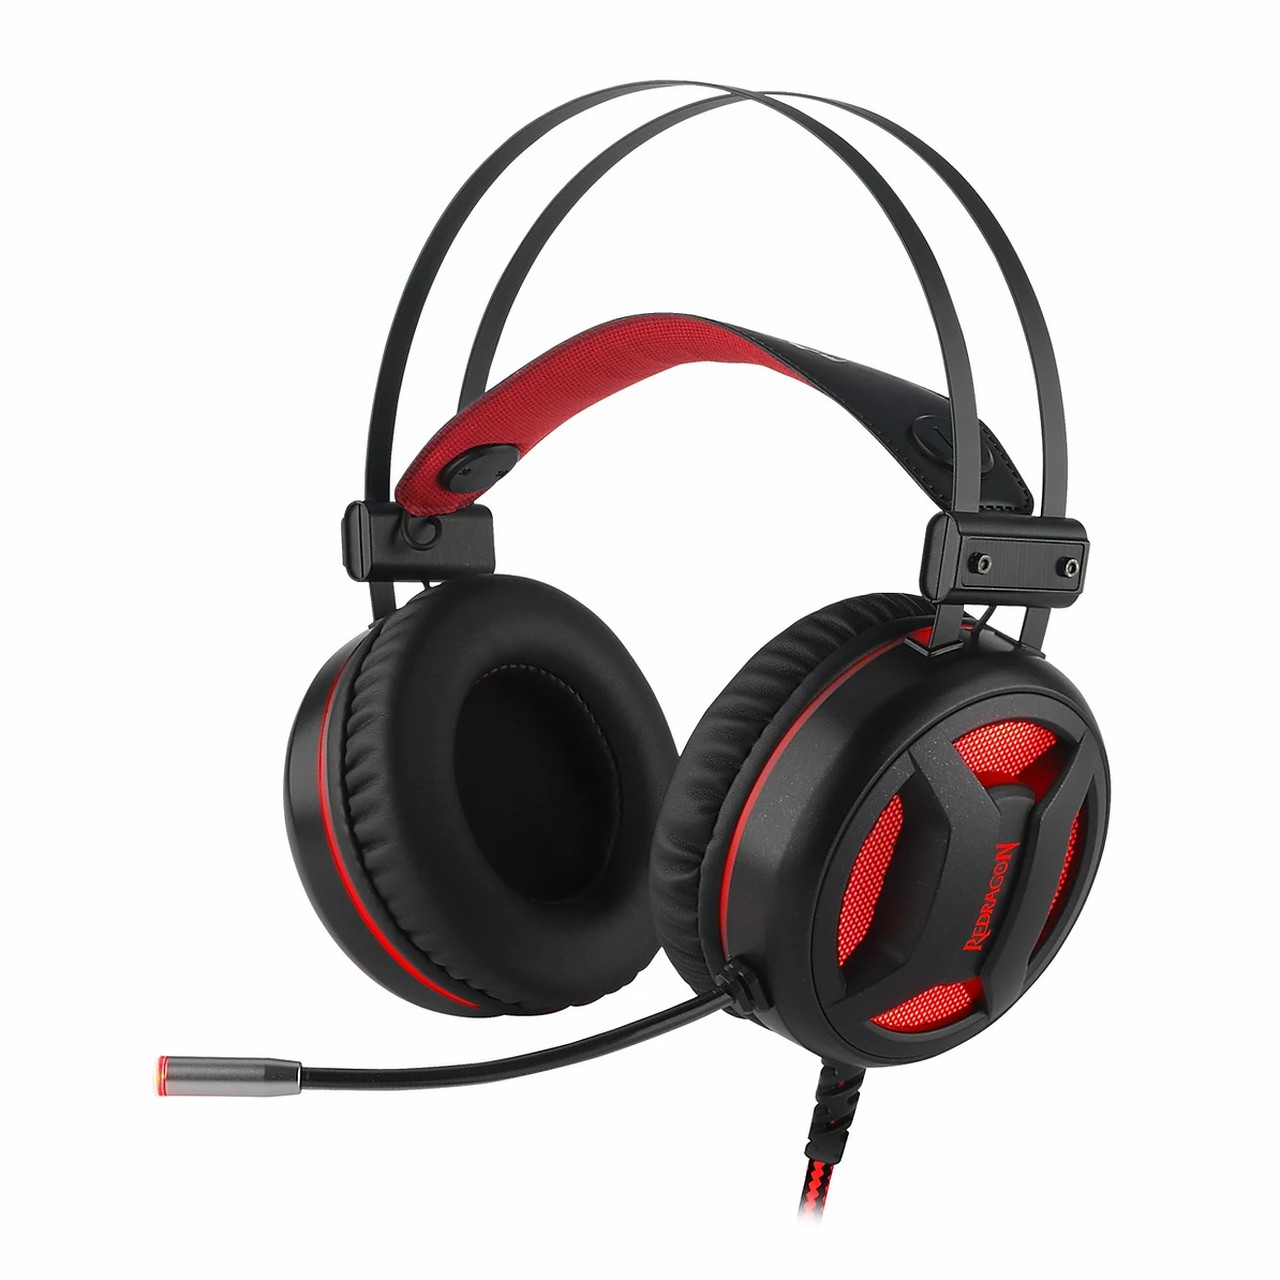 HEADSET GAMER REDRAGON MINOS AUDIO 7.1 USB H210